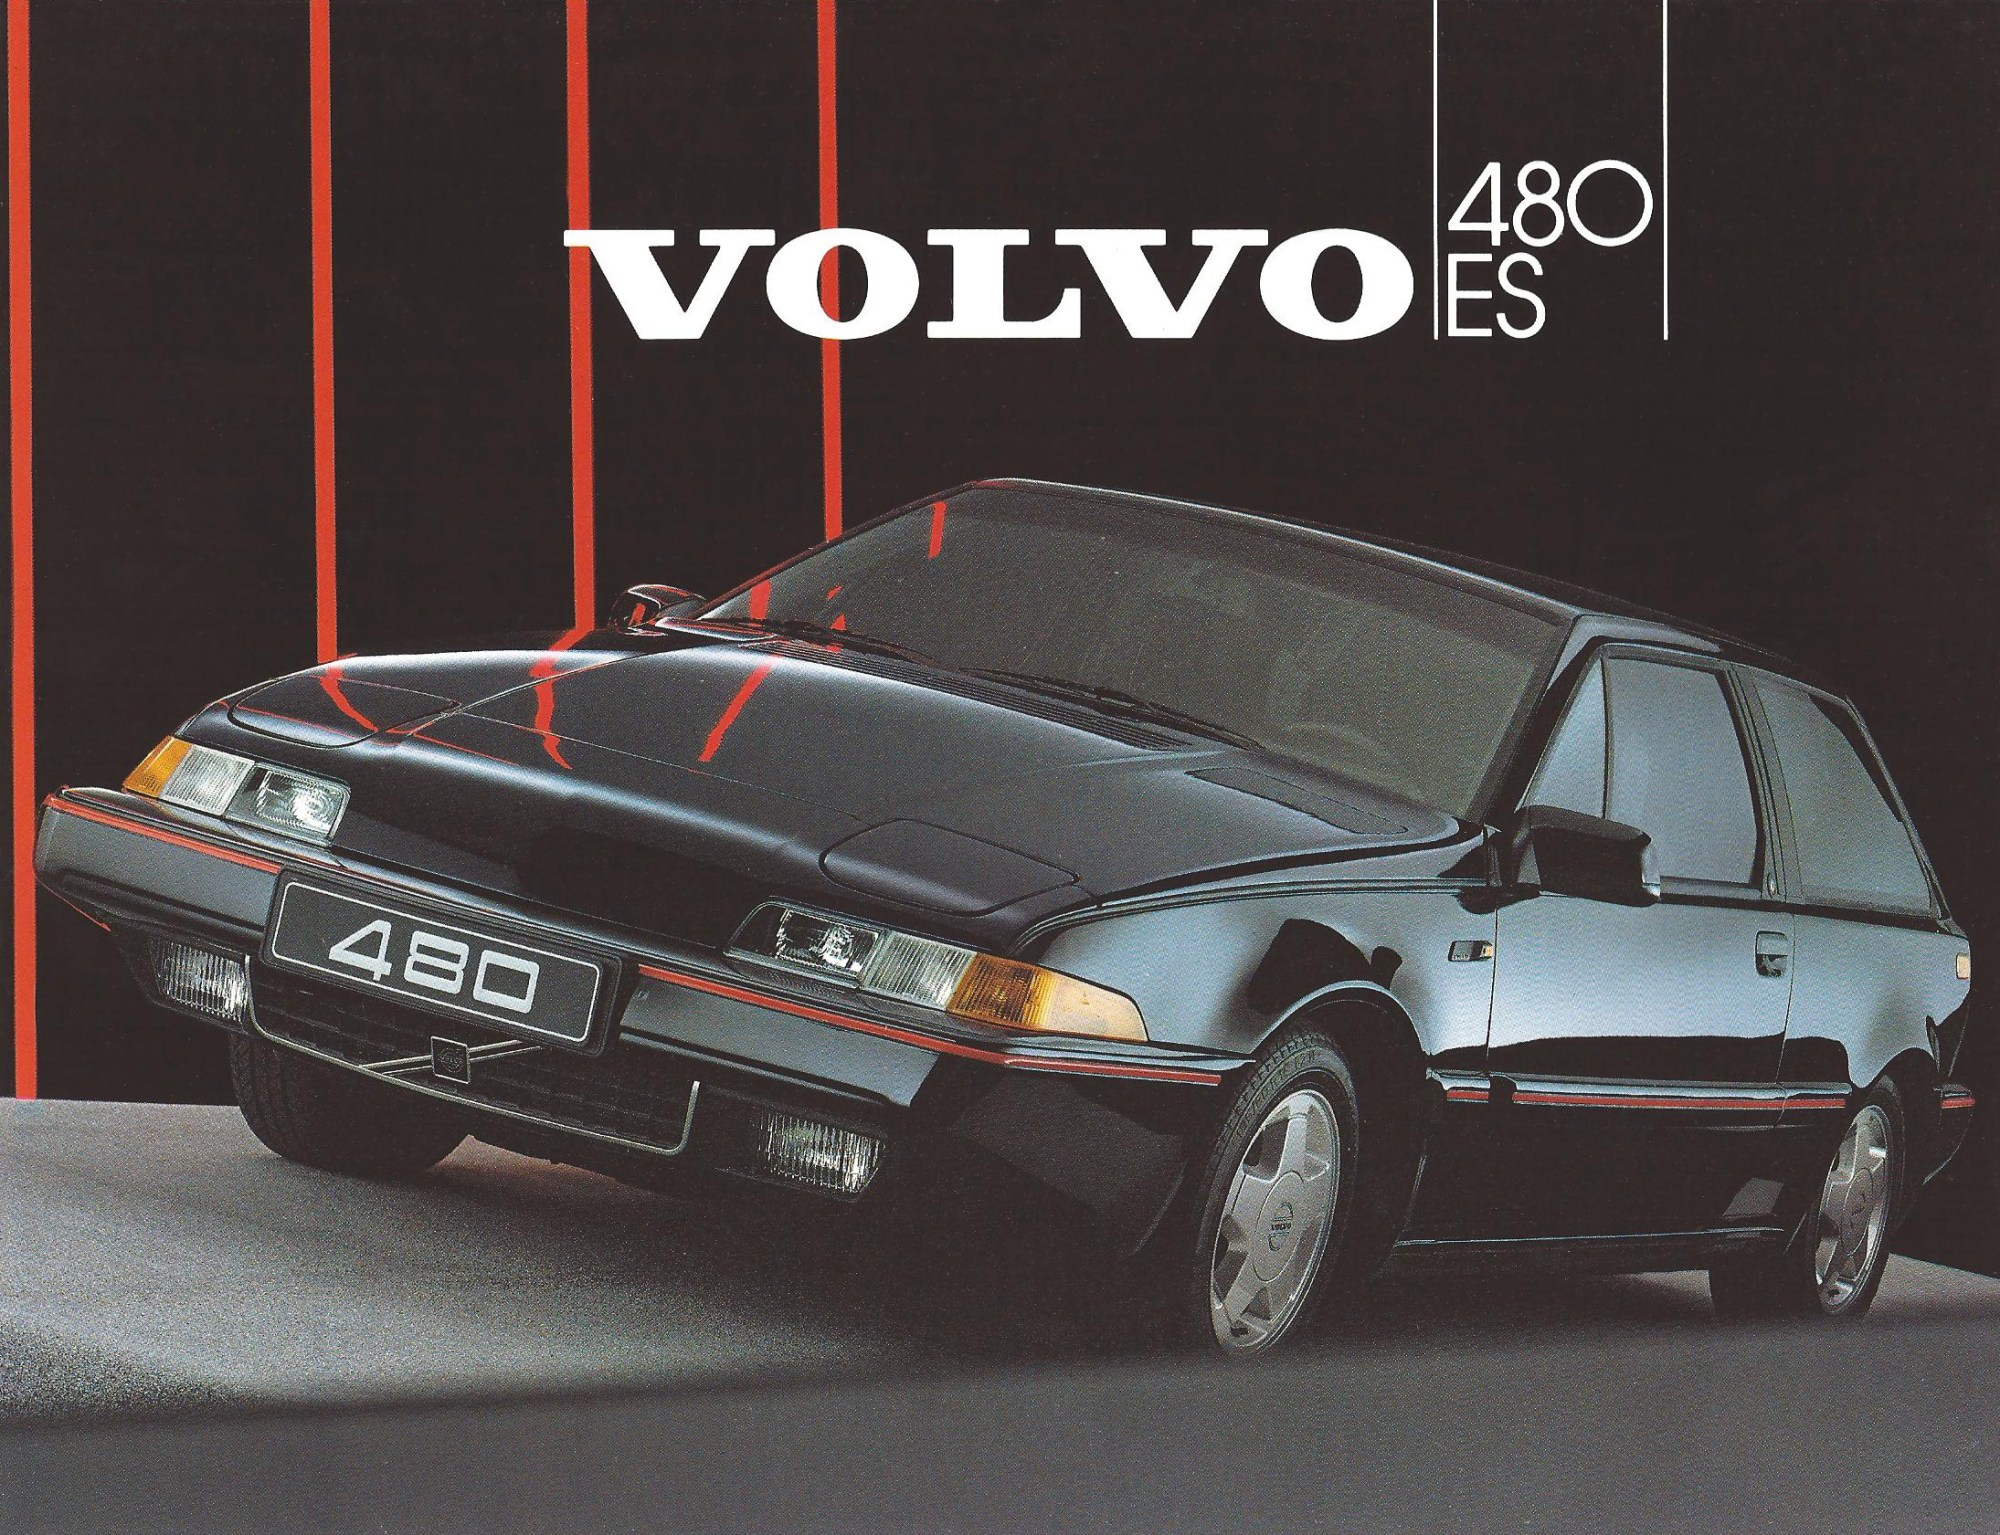 hight resolution of several sketches had been prepared by designers like carozzeria bertone and volvo cars chief designer jan wilsgaard but the proposal that got the green